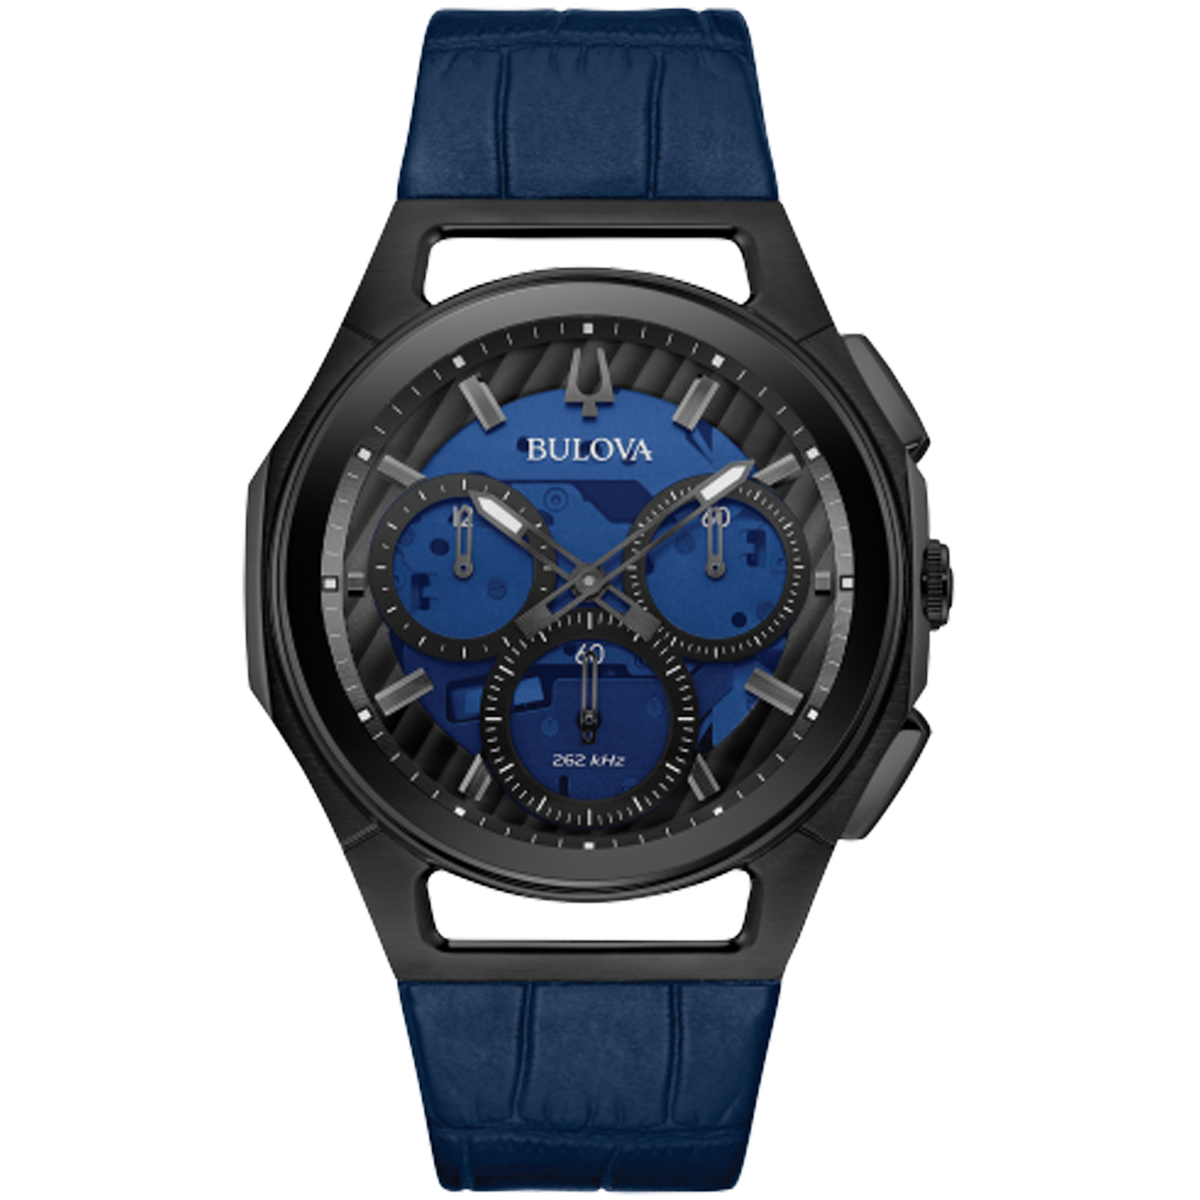 Bulova - Men's Curv Chronograph Watch - BLK PVD Steel with Blue Dial